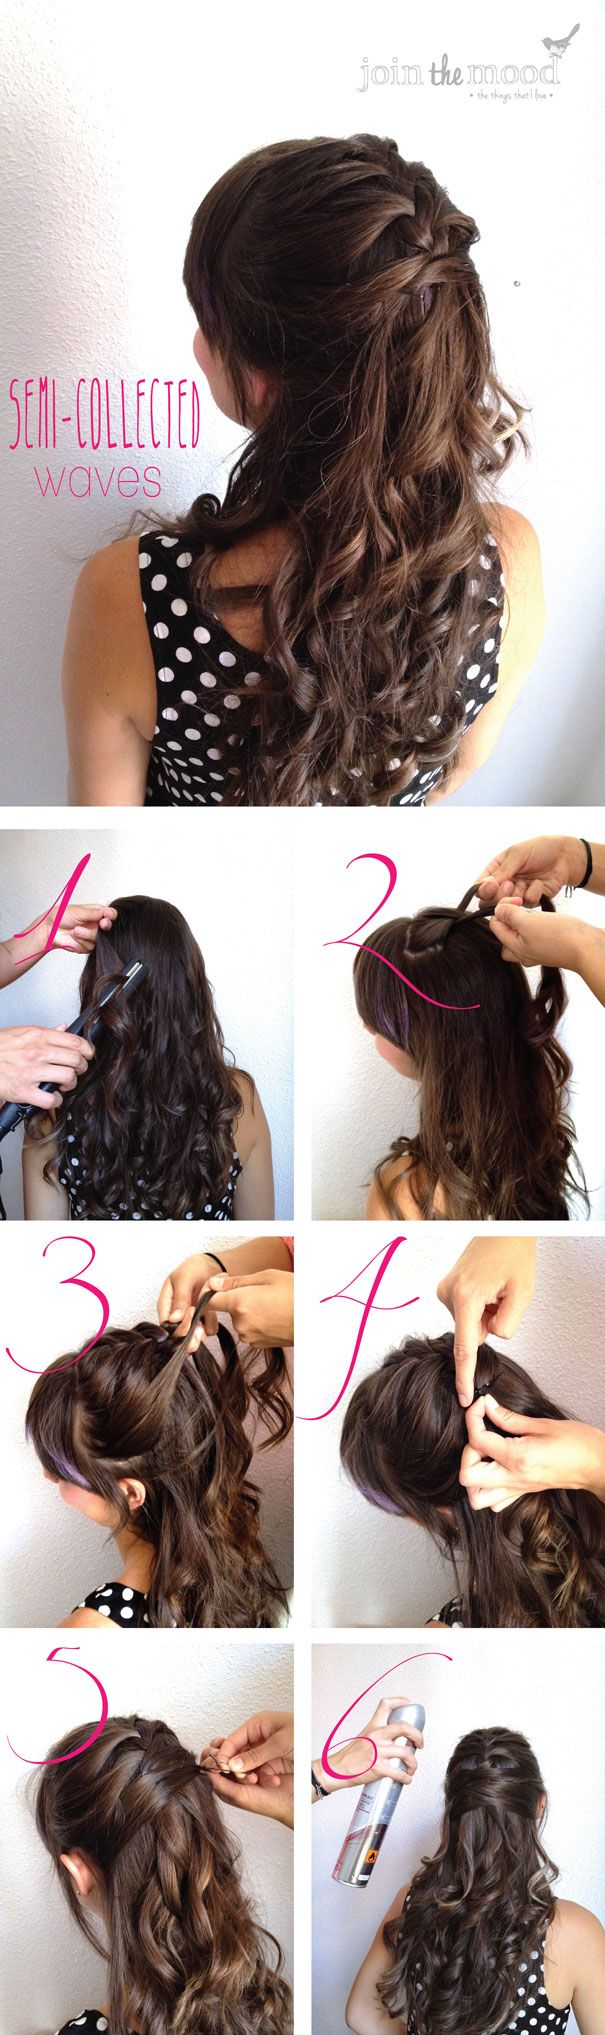 lots of hair ideas: French Braids, Hair Ideas, Hair Tutorials, Bridesmaid Hair, Long Hair, Waves, Hairstyles Tutorials, Semi Collection, Hair Style